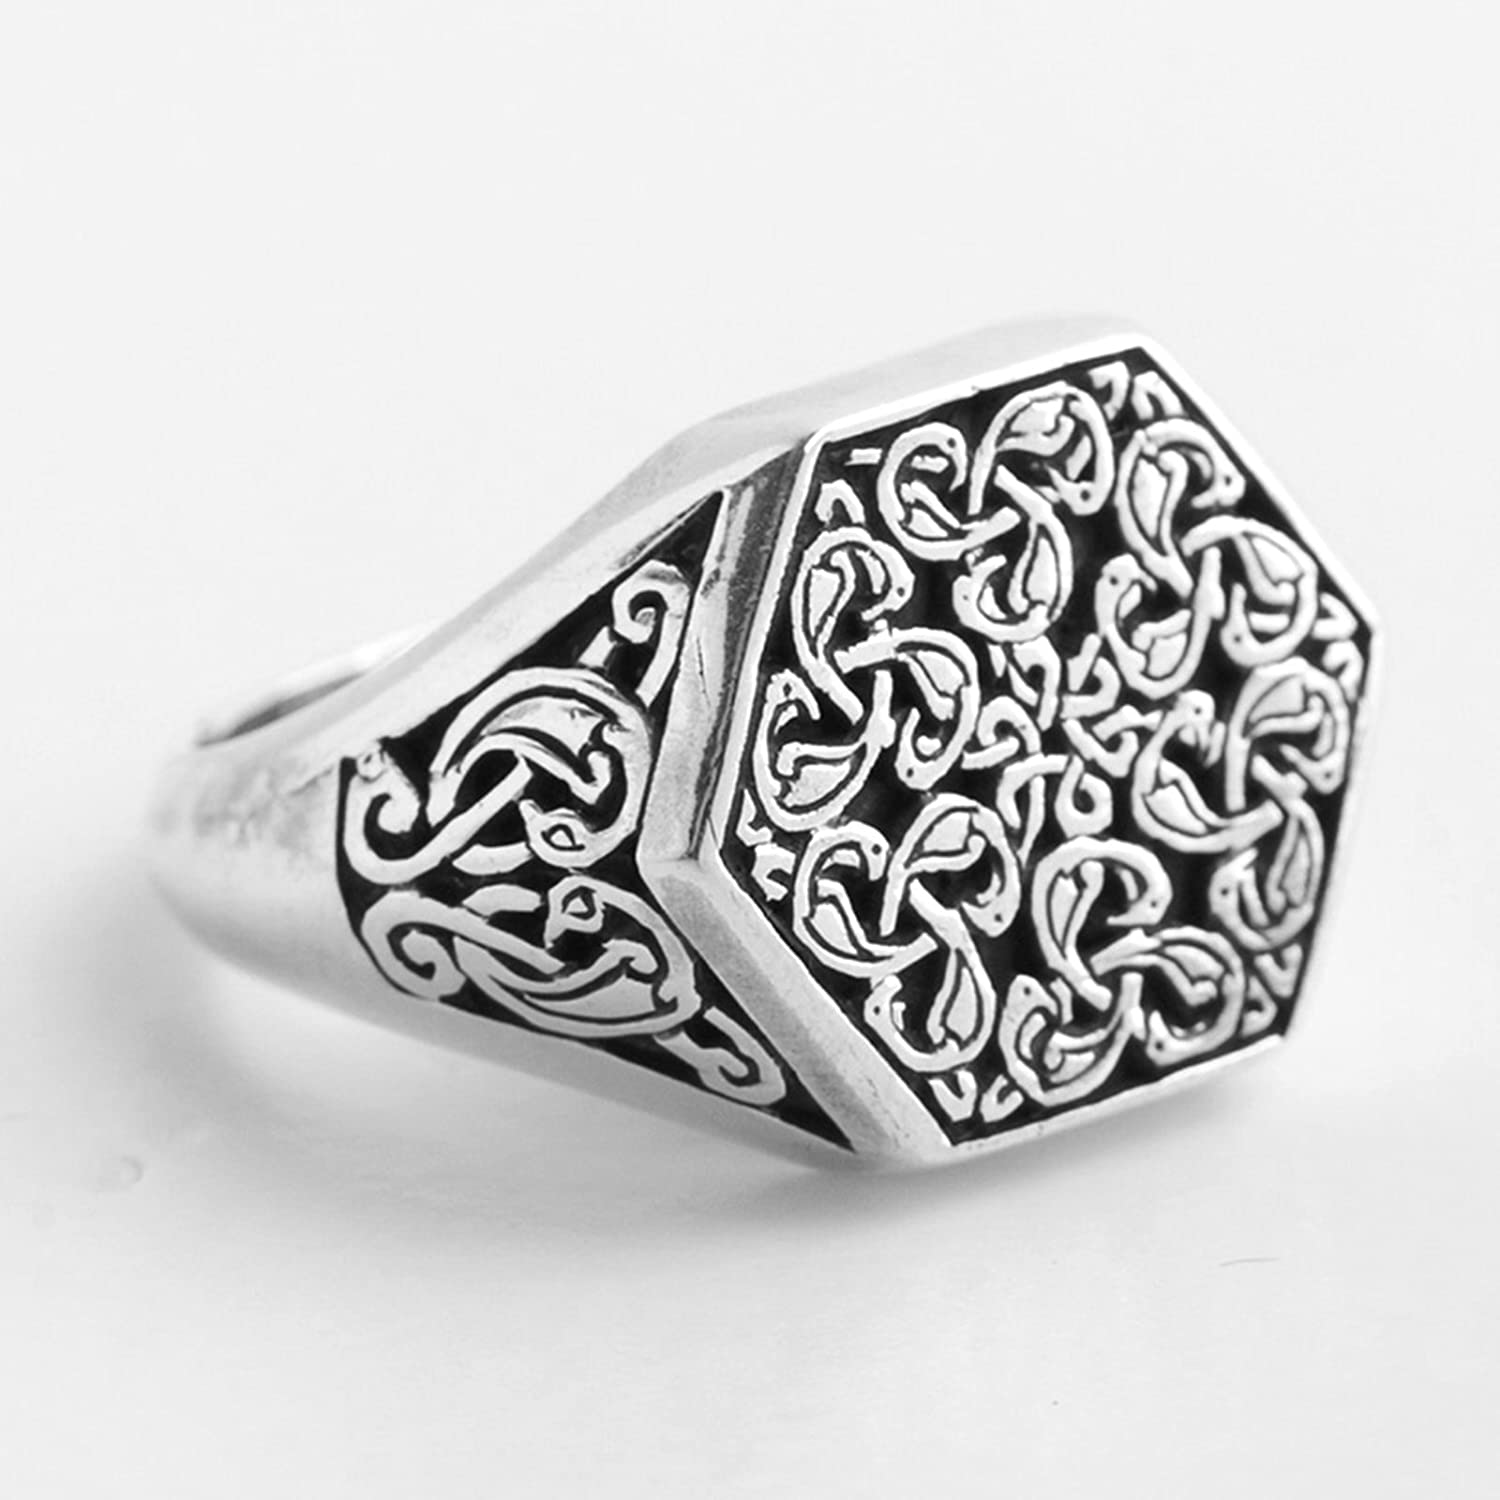 Aooaz Silver Material Ring Unisex Men Wide Hexagon Punk Ring Holiday